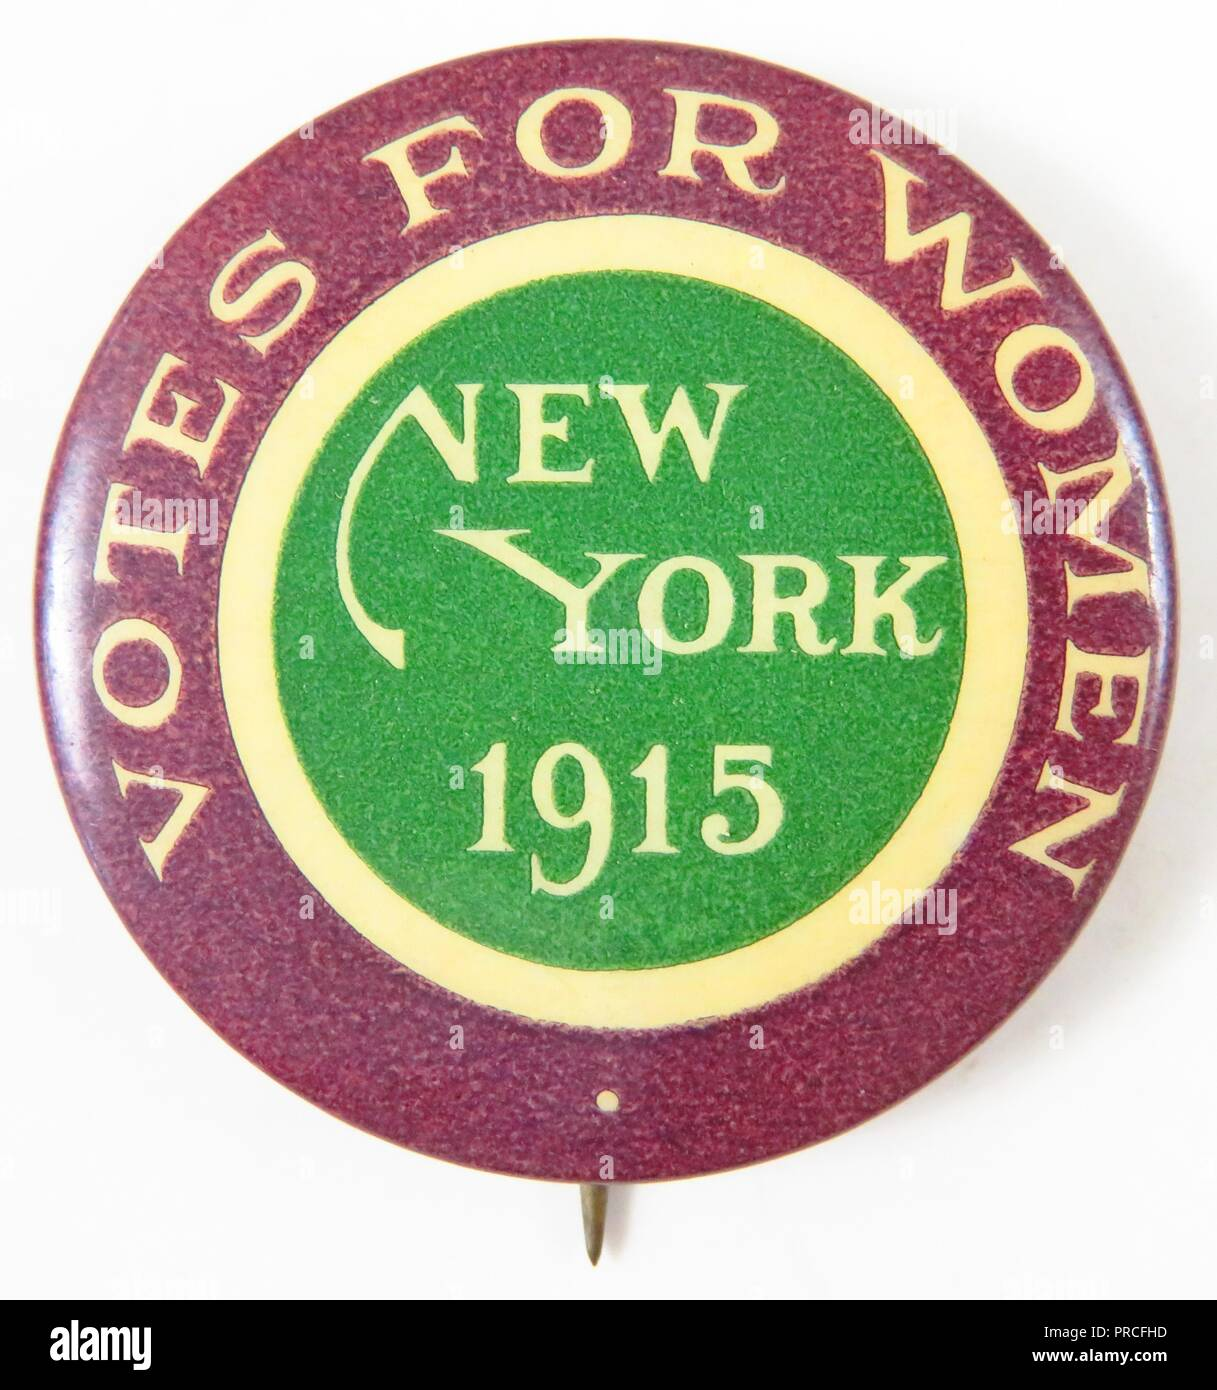 Purple, green, and white (or cream) suffrage pin, with the text 'Votes for Women, New York 1915, ' manufactured for the American market, by the Women's Political Union of New York, with colors borrowed from English suffrage organizations, 1915. Photography by Emilia van Beugen. () - Stock Image